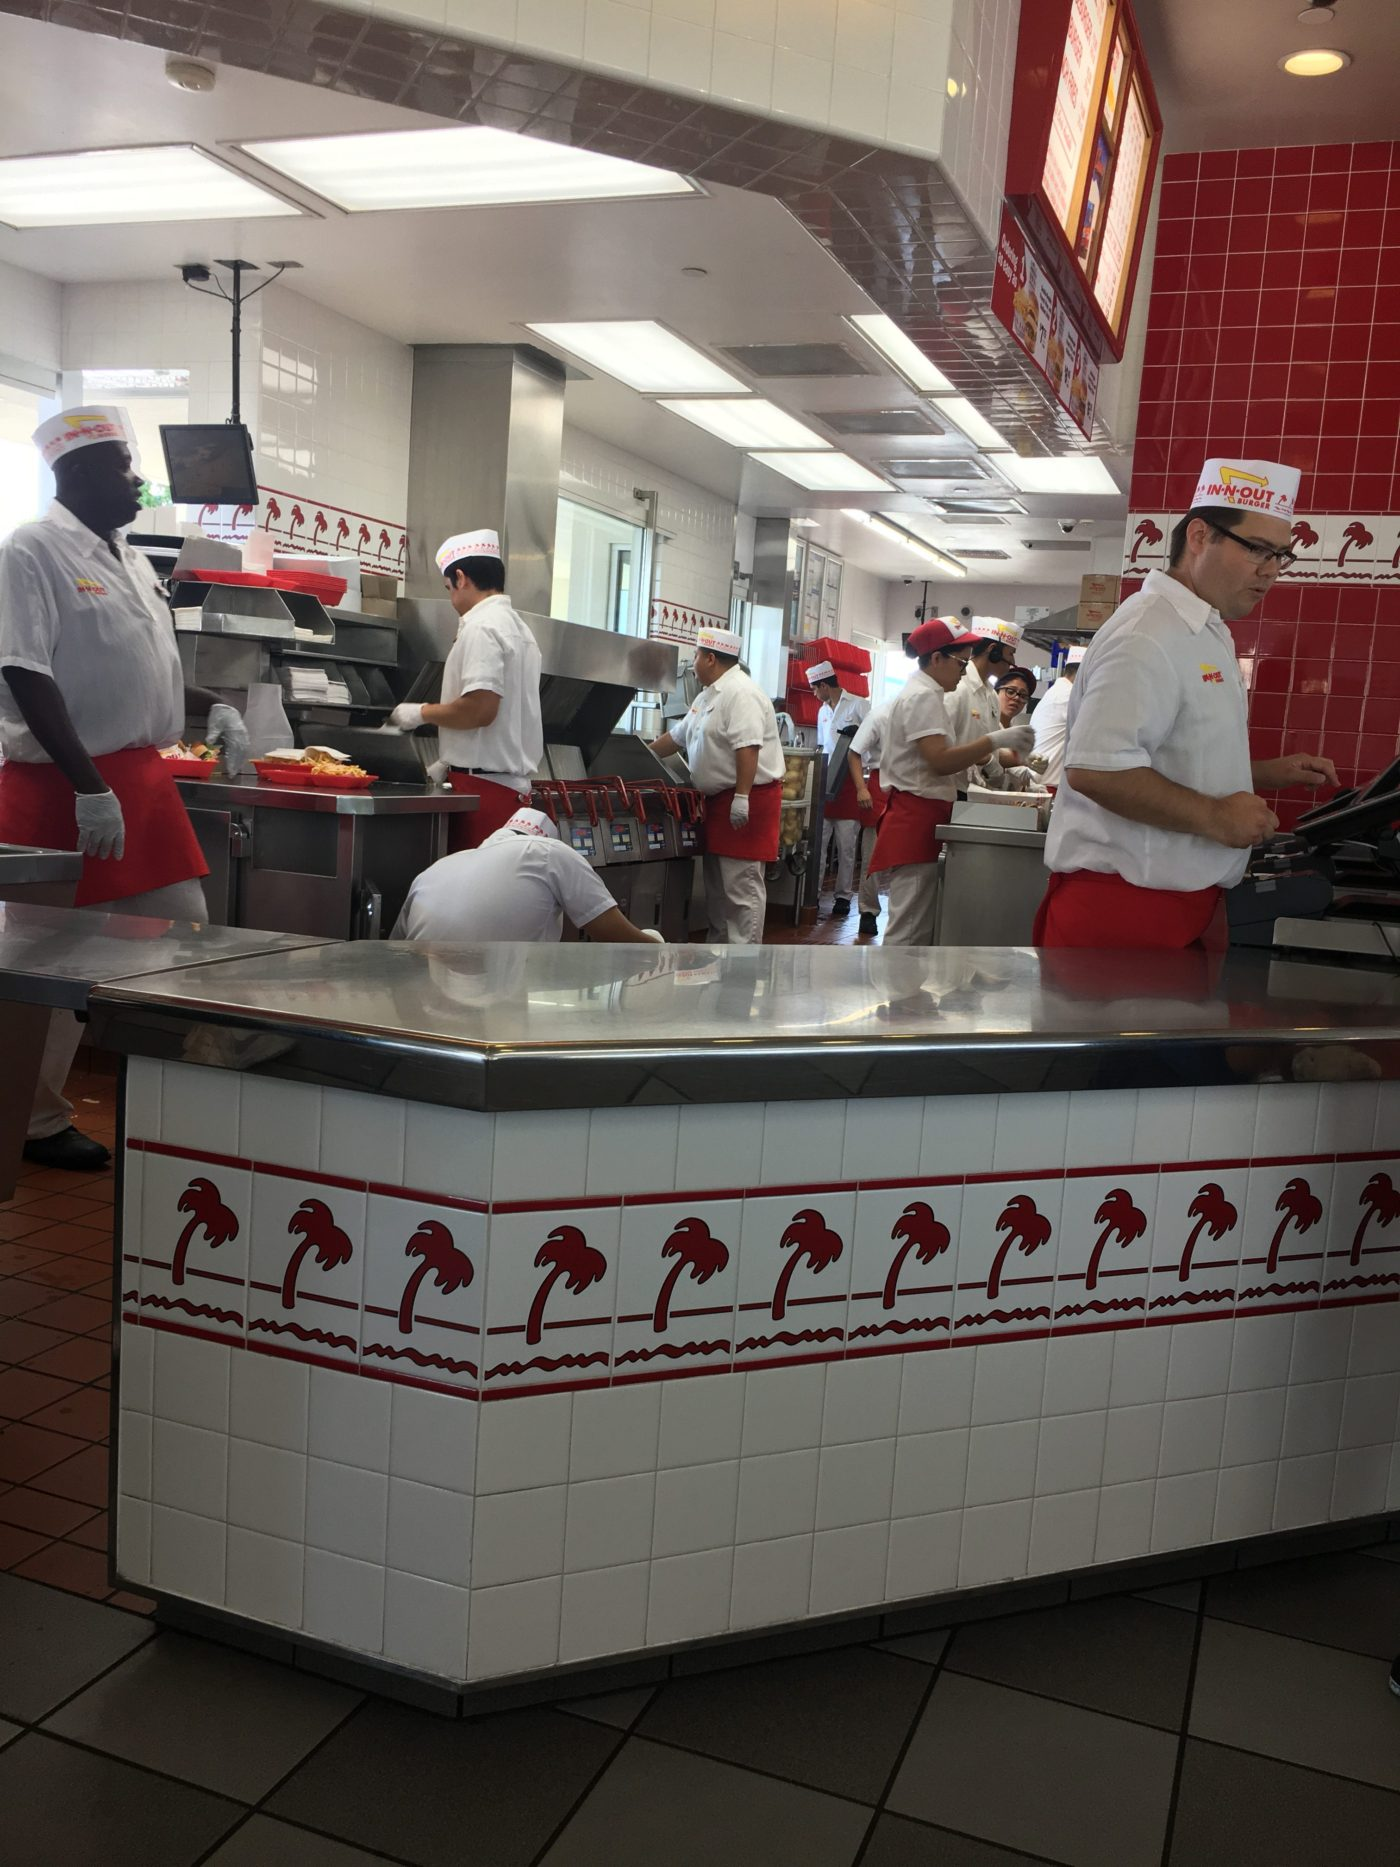 Cooking up employee loyalty the In-N-Out way!